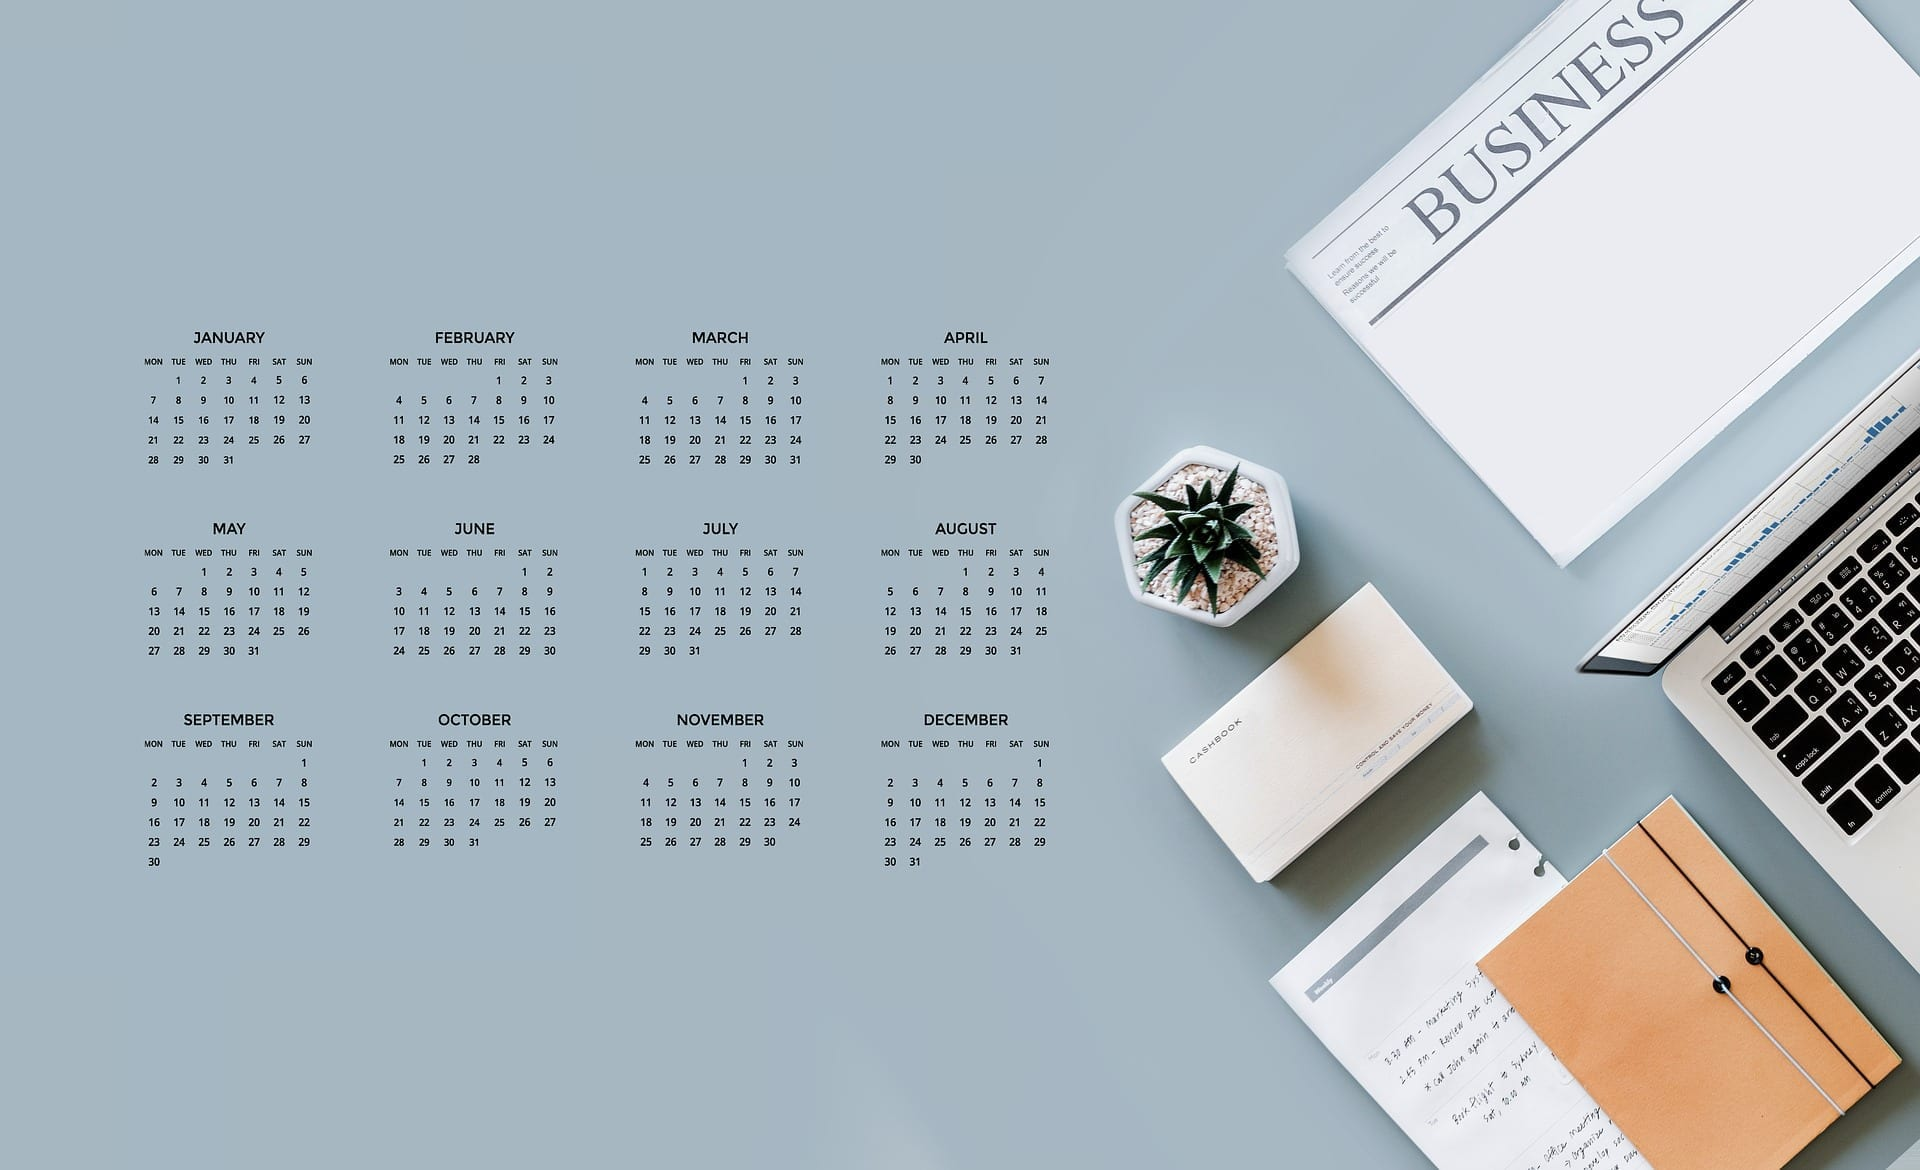 How to Prepare Your Business for Profit in the New Year